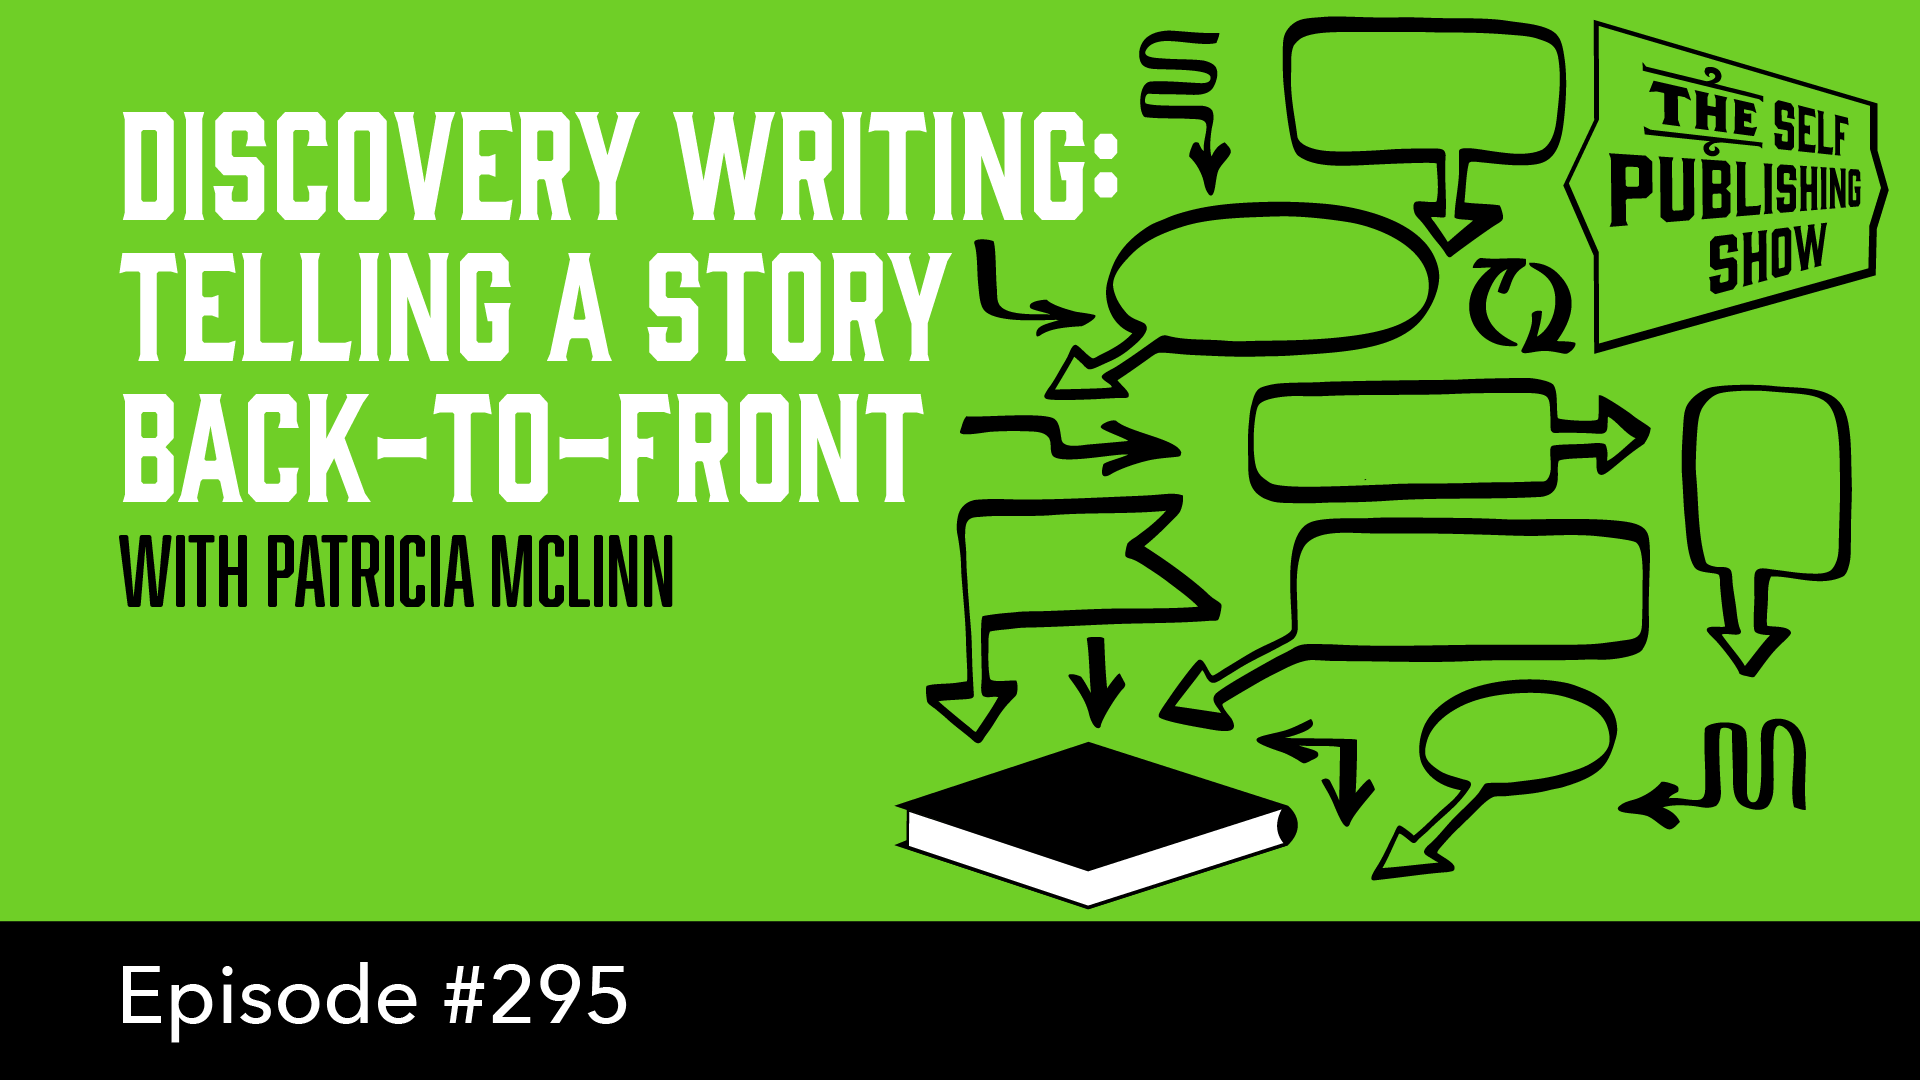 Discovery Writing: Telling a Story Back-to-Front